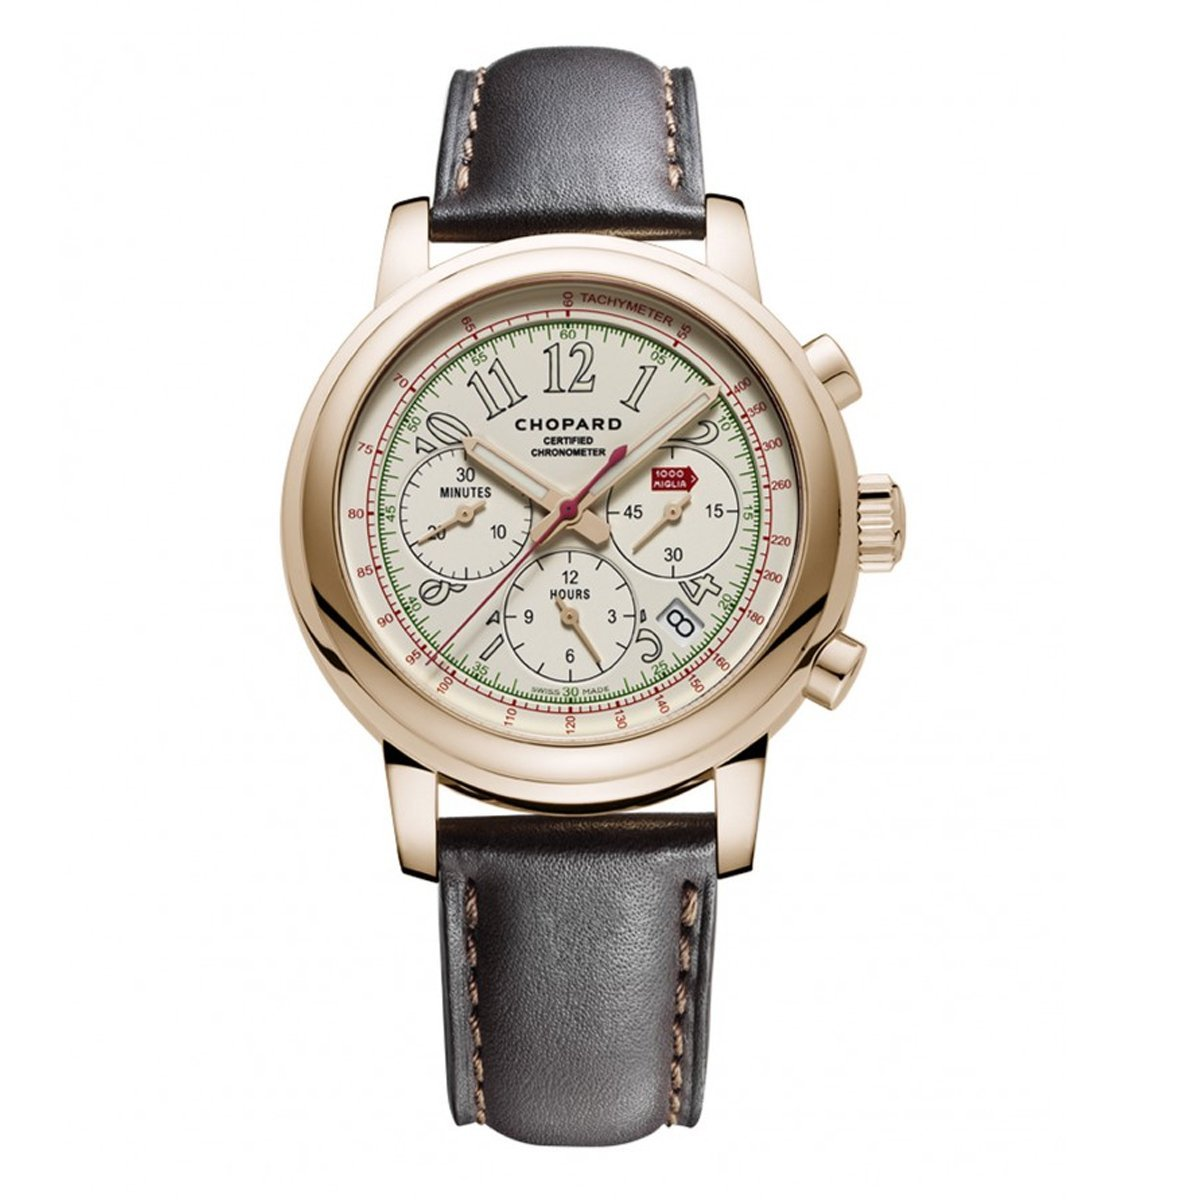 Chopard Mille Miglia Race Edition Chronograph Men's Watch Rose Gold - Watches & Crystals